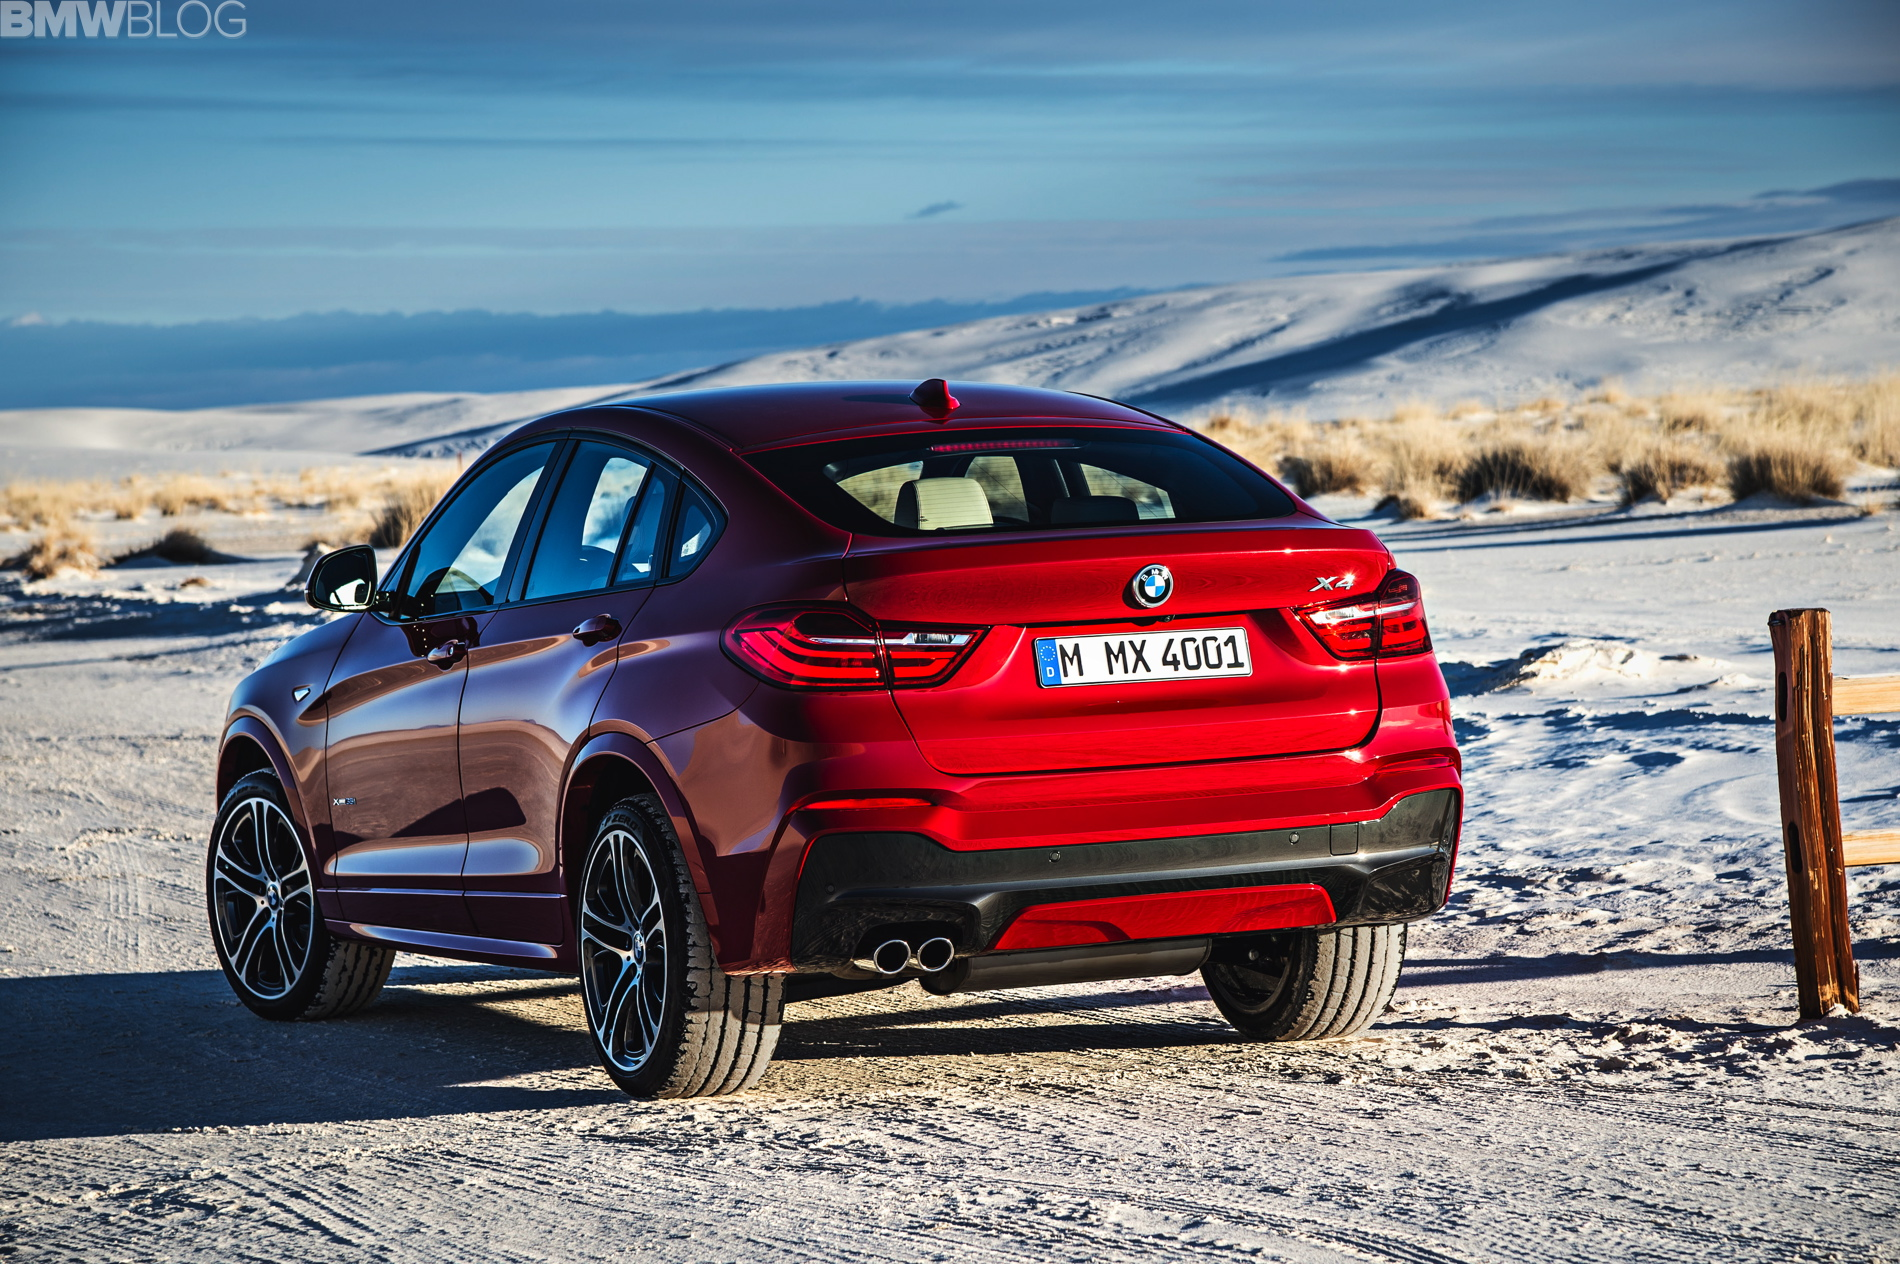 The new BMW X4 has its world premiere today HD Free Picture Download Image Of